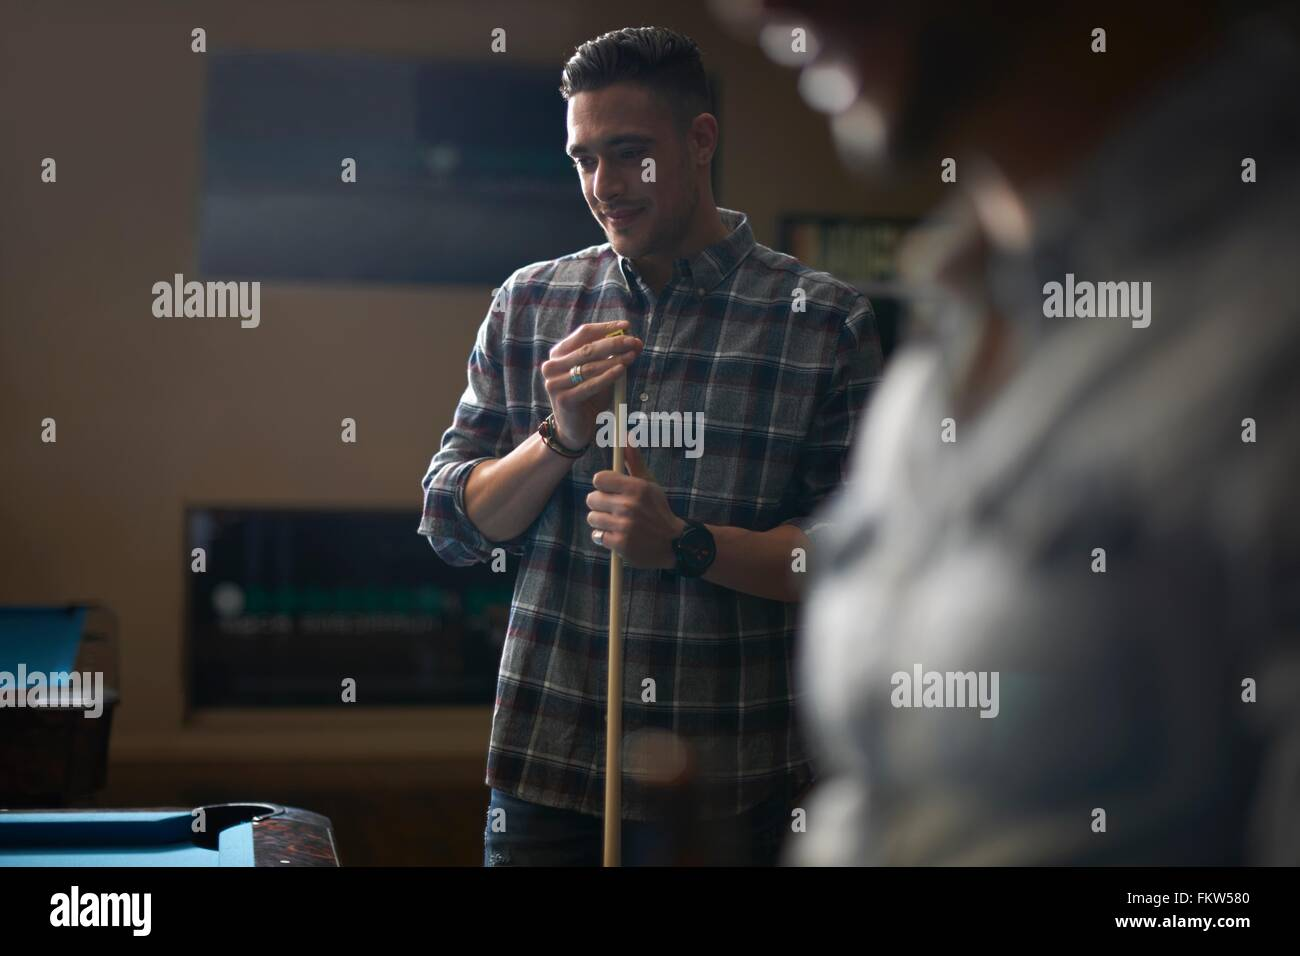 Man with pool cue standing at pool table - Stock Image